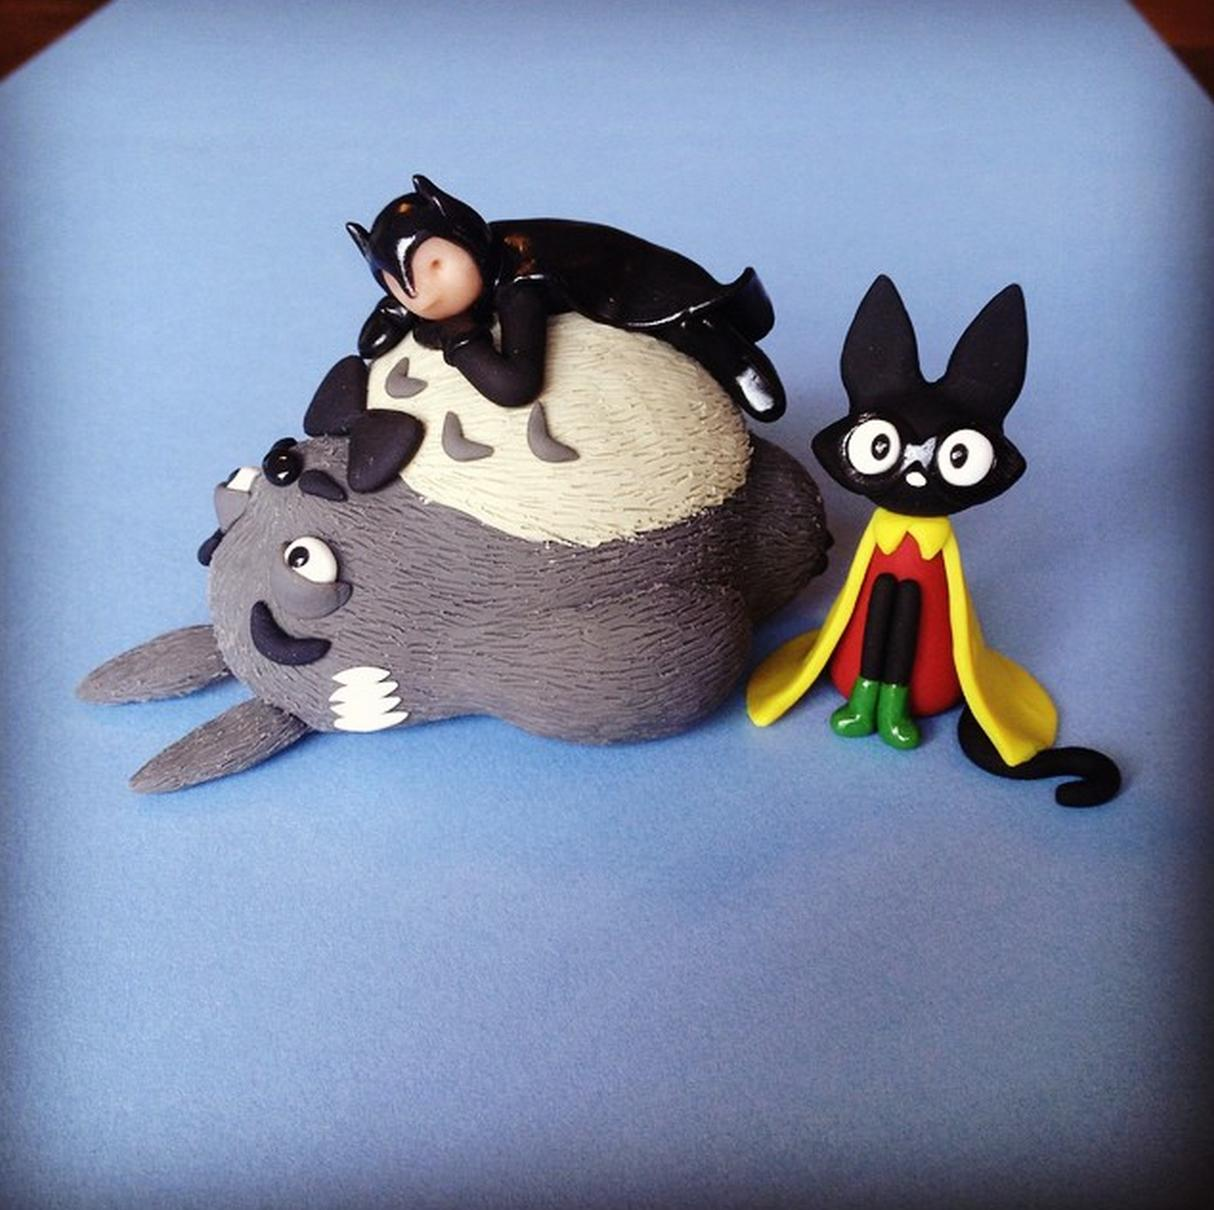 1 - Alfred-Totoro Robin-Jiji and Batman